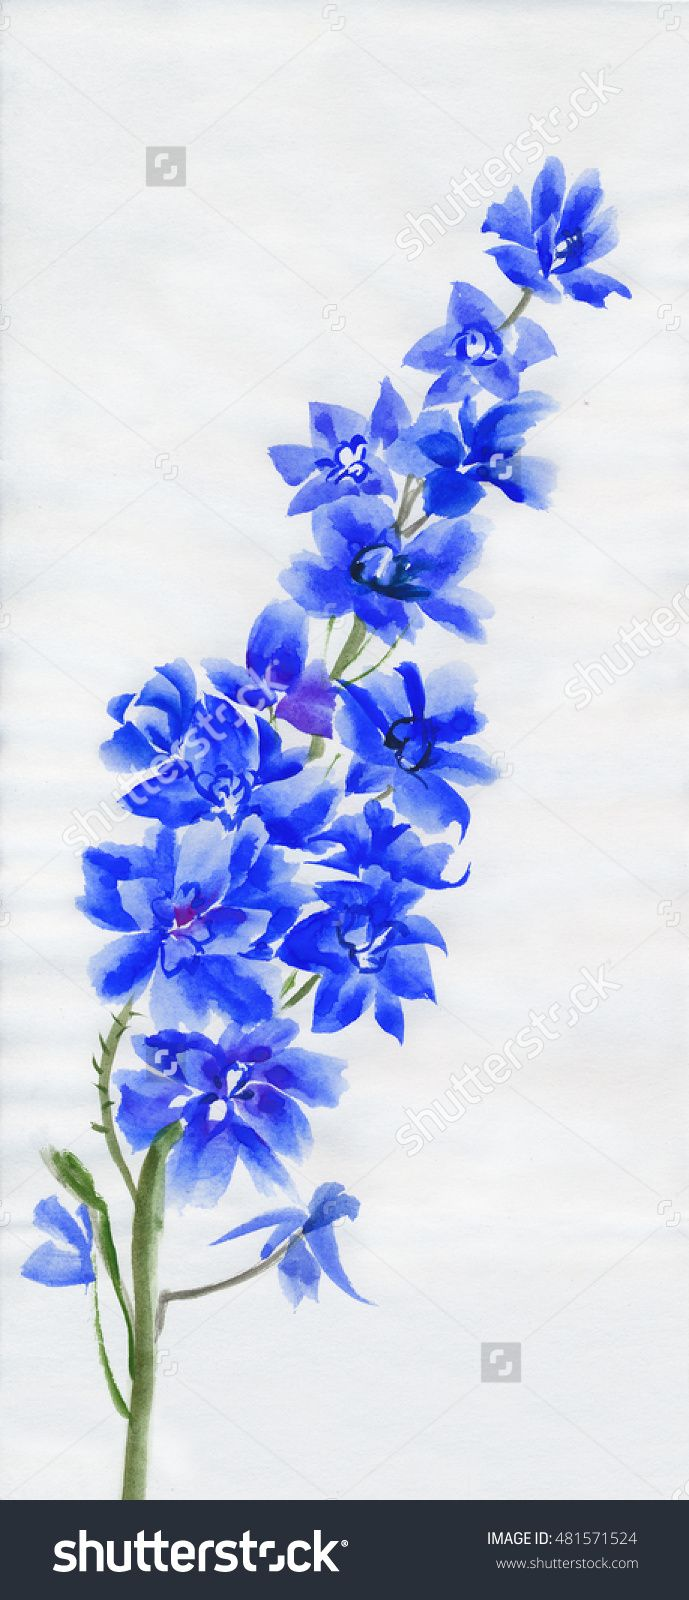 Delphinium Branch Isolated On White Original Watercolor Painting Stock Photo…